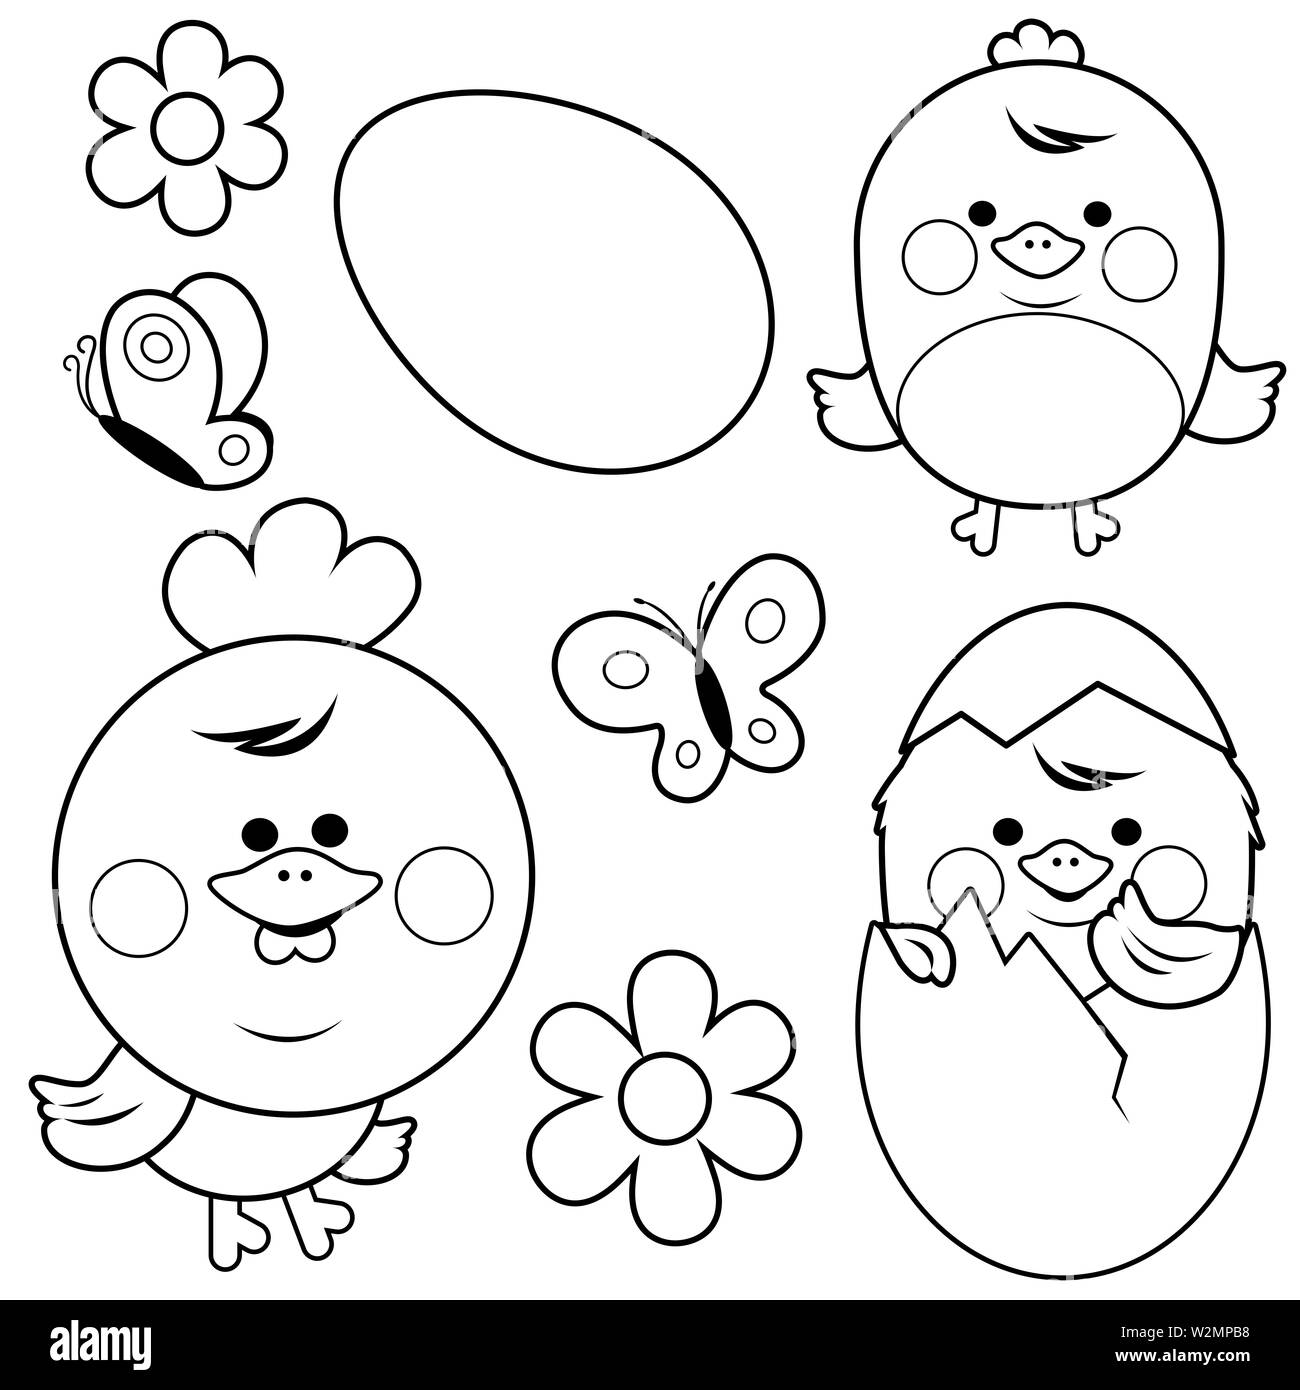 Easter Chick Coloring Page Stock Photos & Easter Chick ...